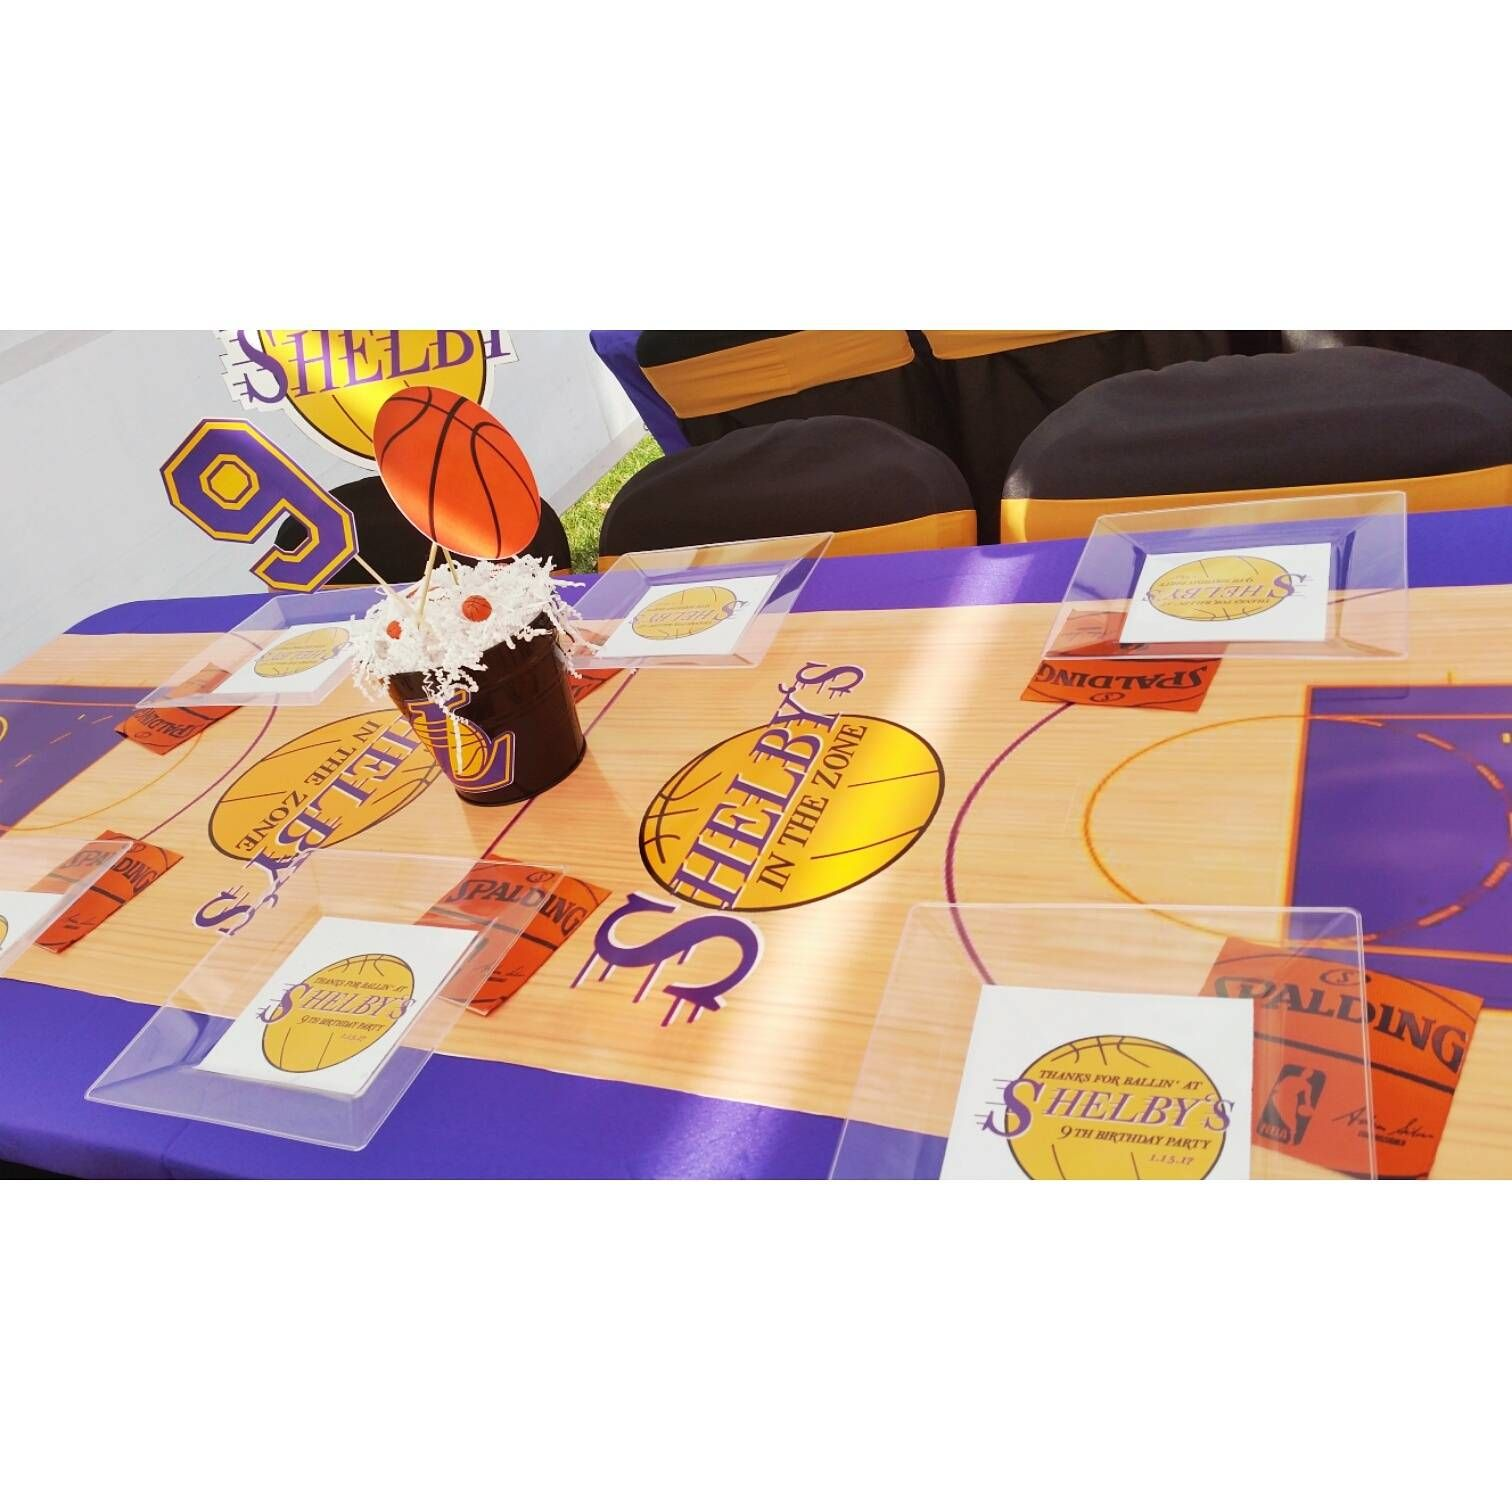 Shelby's Laker Party Basketball themed birthday party